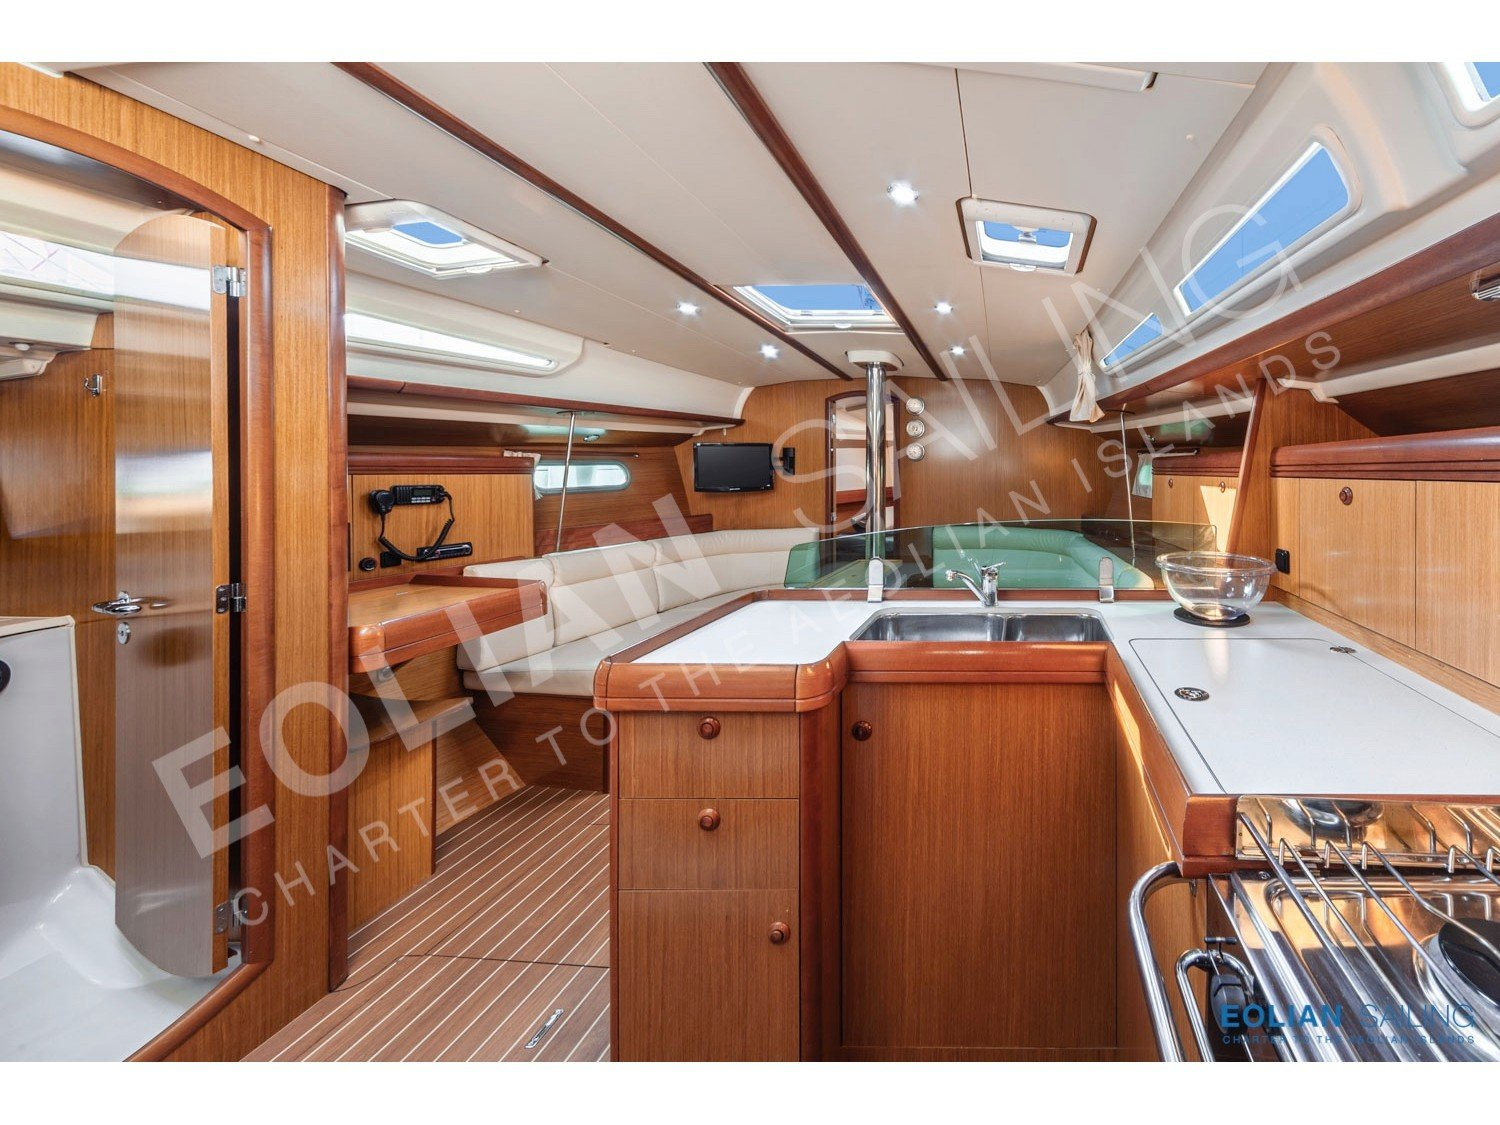 Jeanneau S.O. 42i (Vera (refitted in 2019, like new!)) Interior image - 7